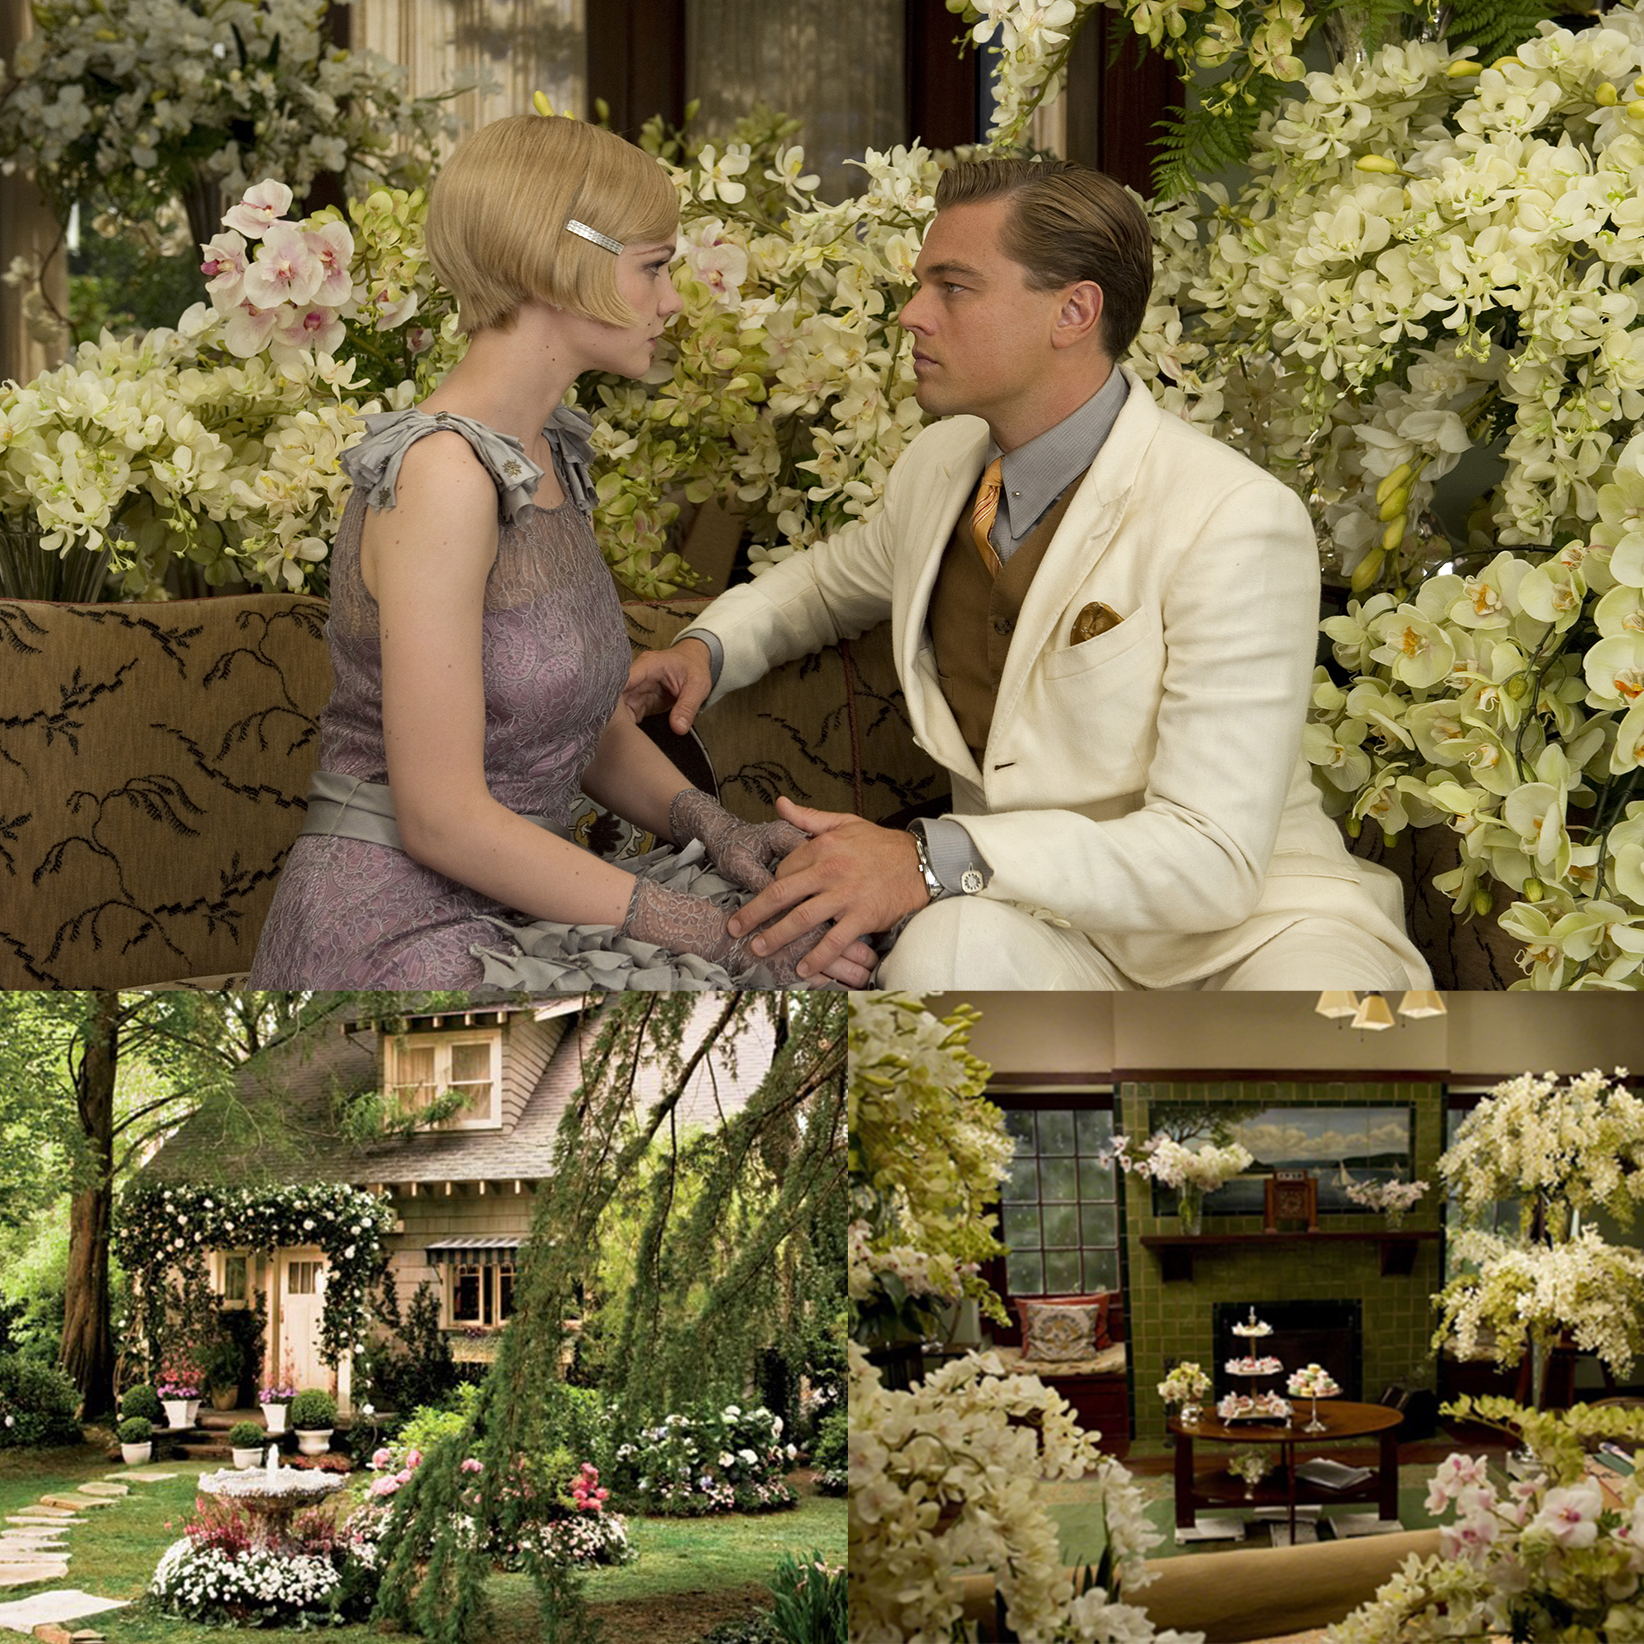 The Great Gatsby Interior 2 collage for film home decor ideas